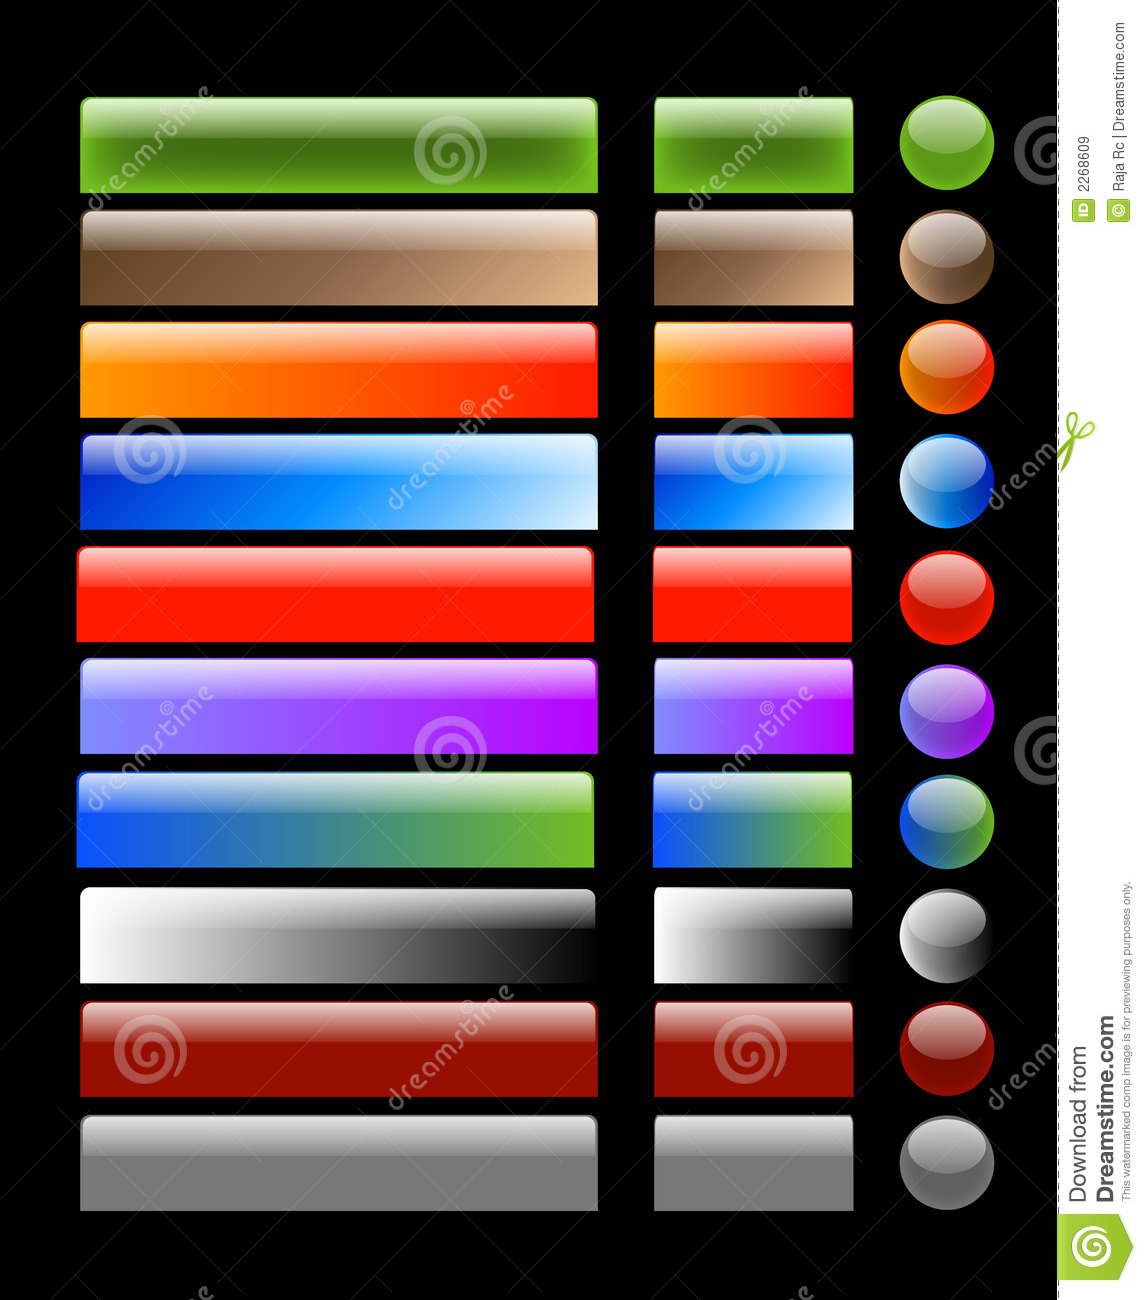 Web Buttons Royalty Free Stock Images - Image: 2268609: www.dreamstime.com/royalty-free-stock-images-web-buttons-image2268609